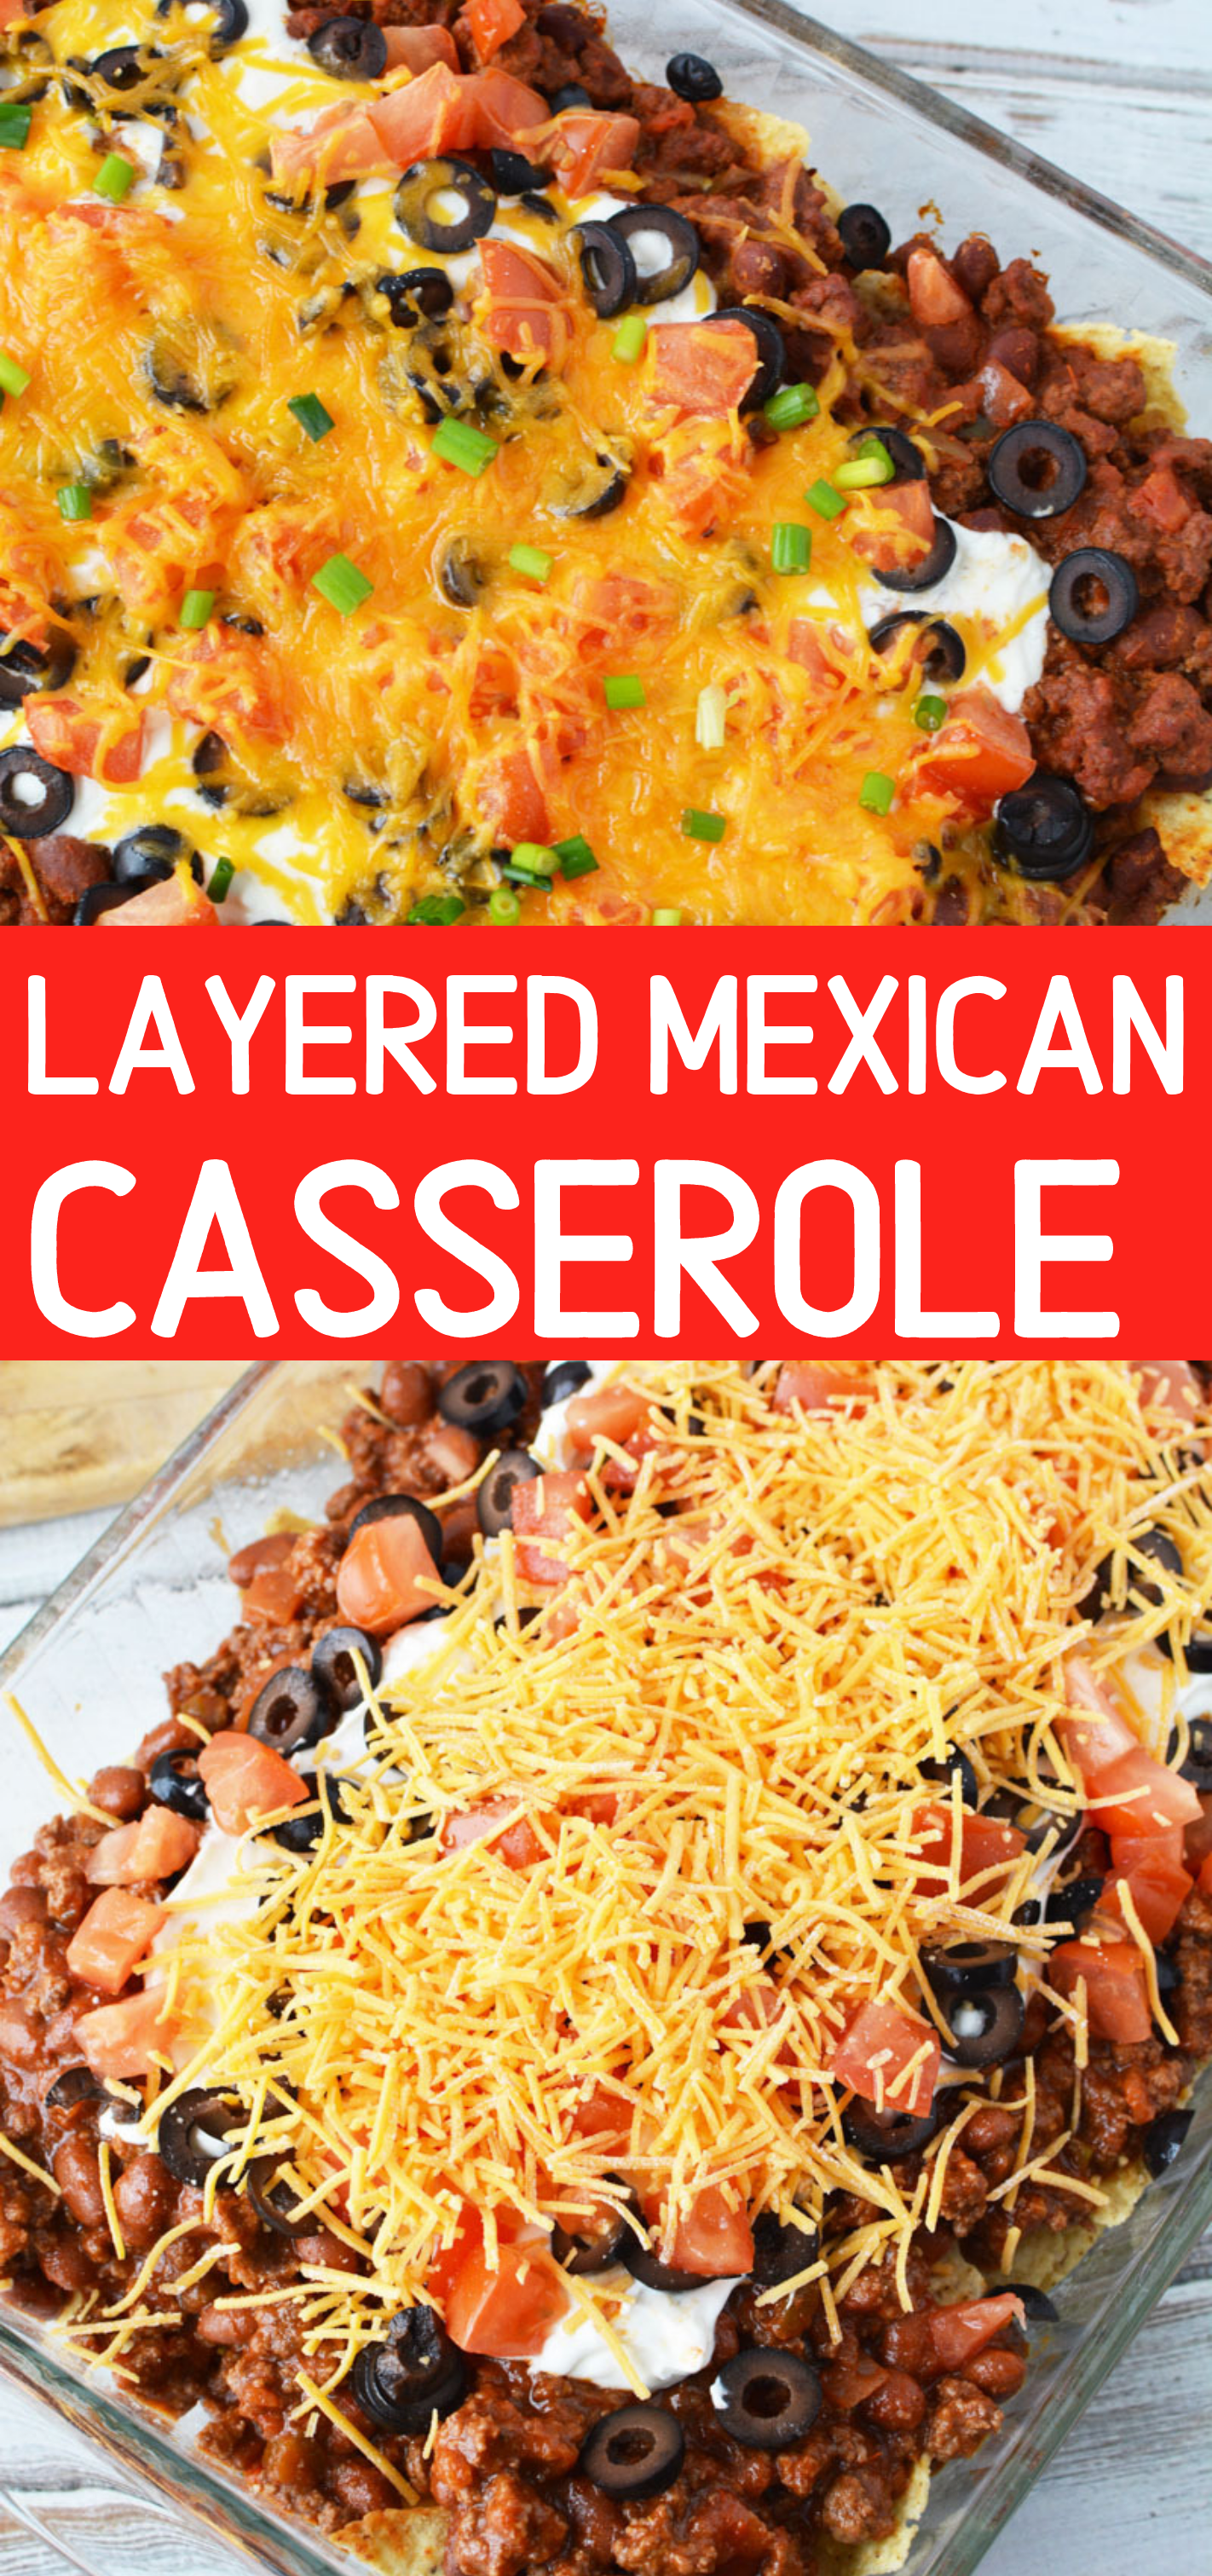 Mexican Casserole Easy Mexican Casserole Mexican Ground Beef Casserole Mexican Food Recipes